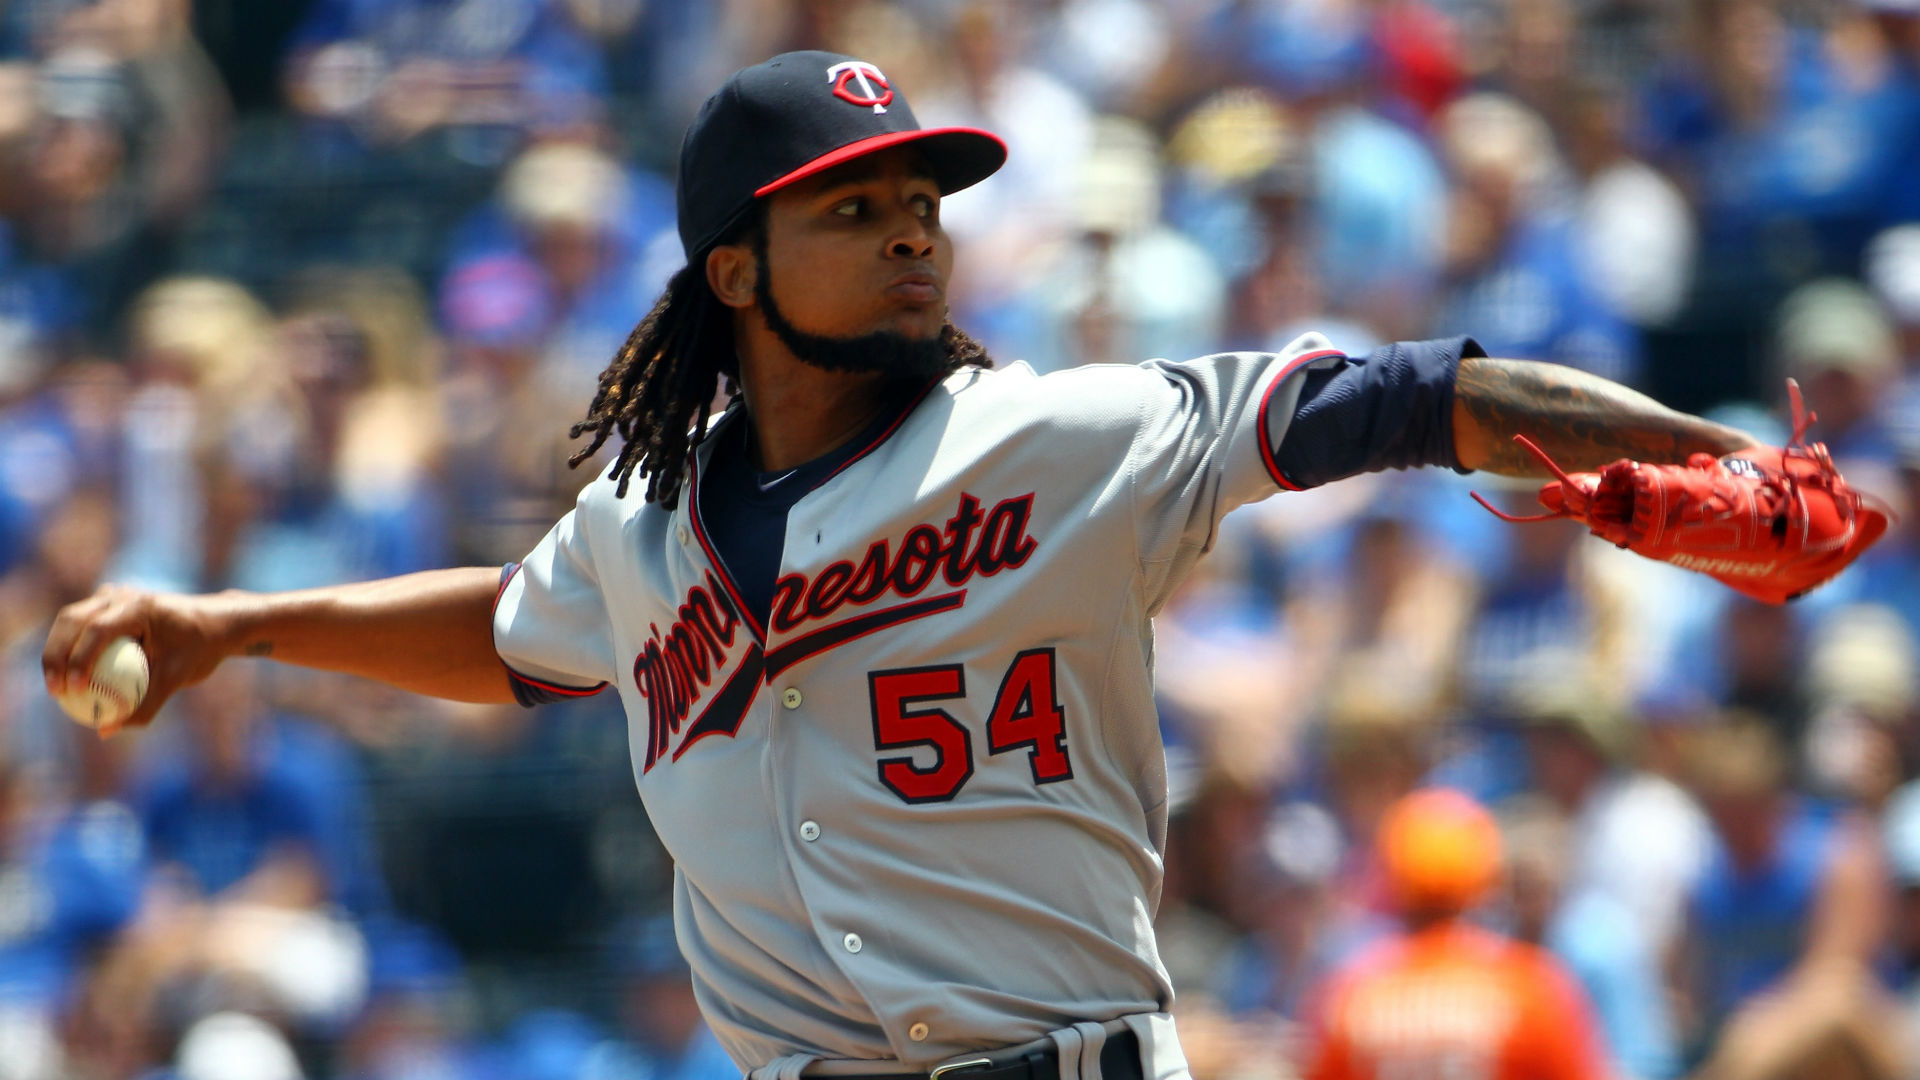 MLB Nightly 9: Ervin Santana, fresh off PED suspension, returns to form in Twins debut